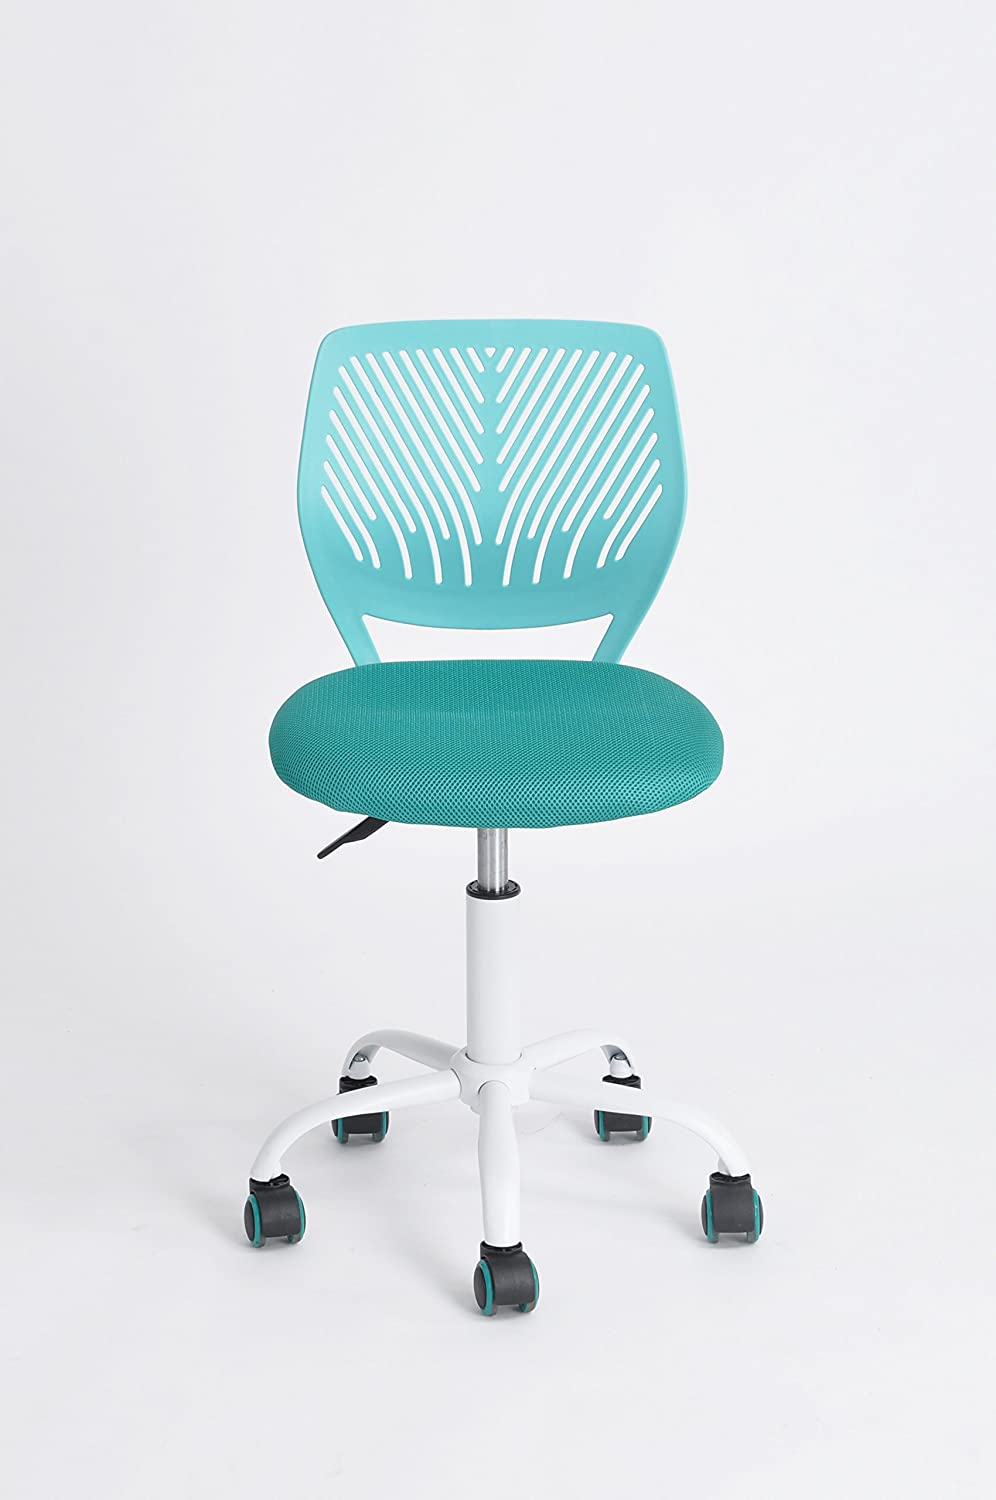 Genial Amazon.com: Green Forest Office Task Desk Chair Adjustable Mid Back Home  Children Study Chair, Turquoise: Kitchen U0026 Dining